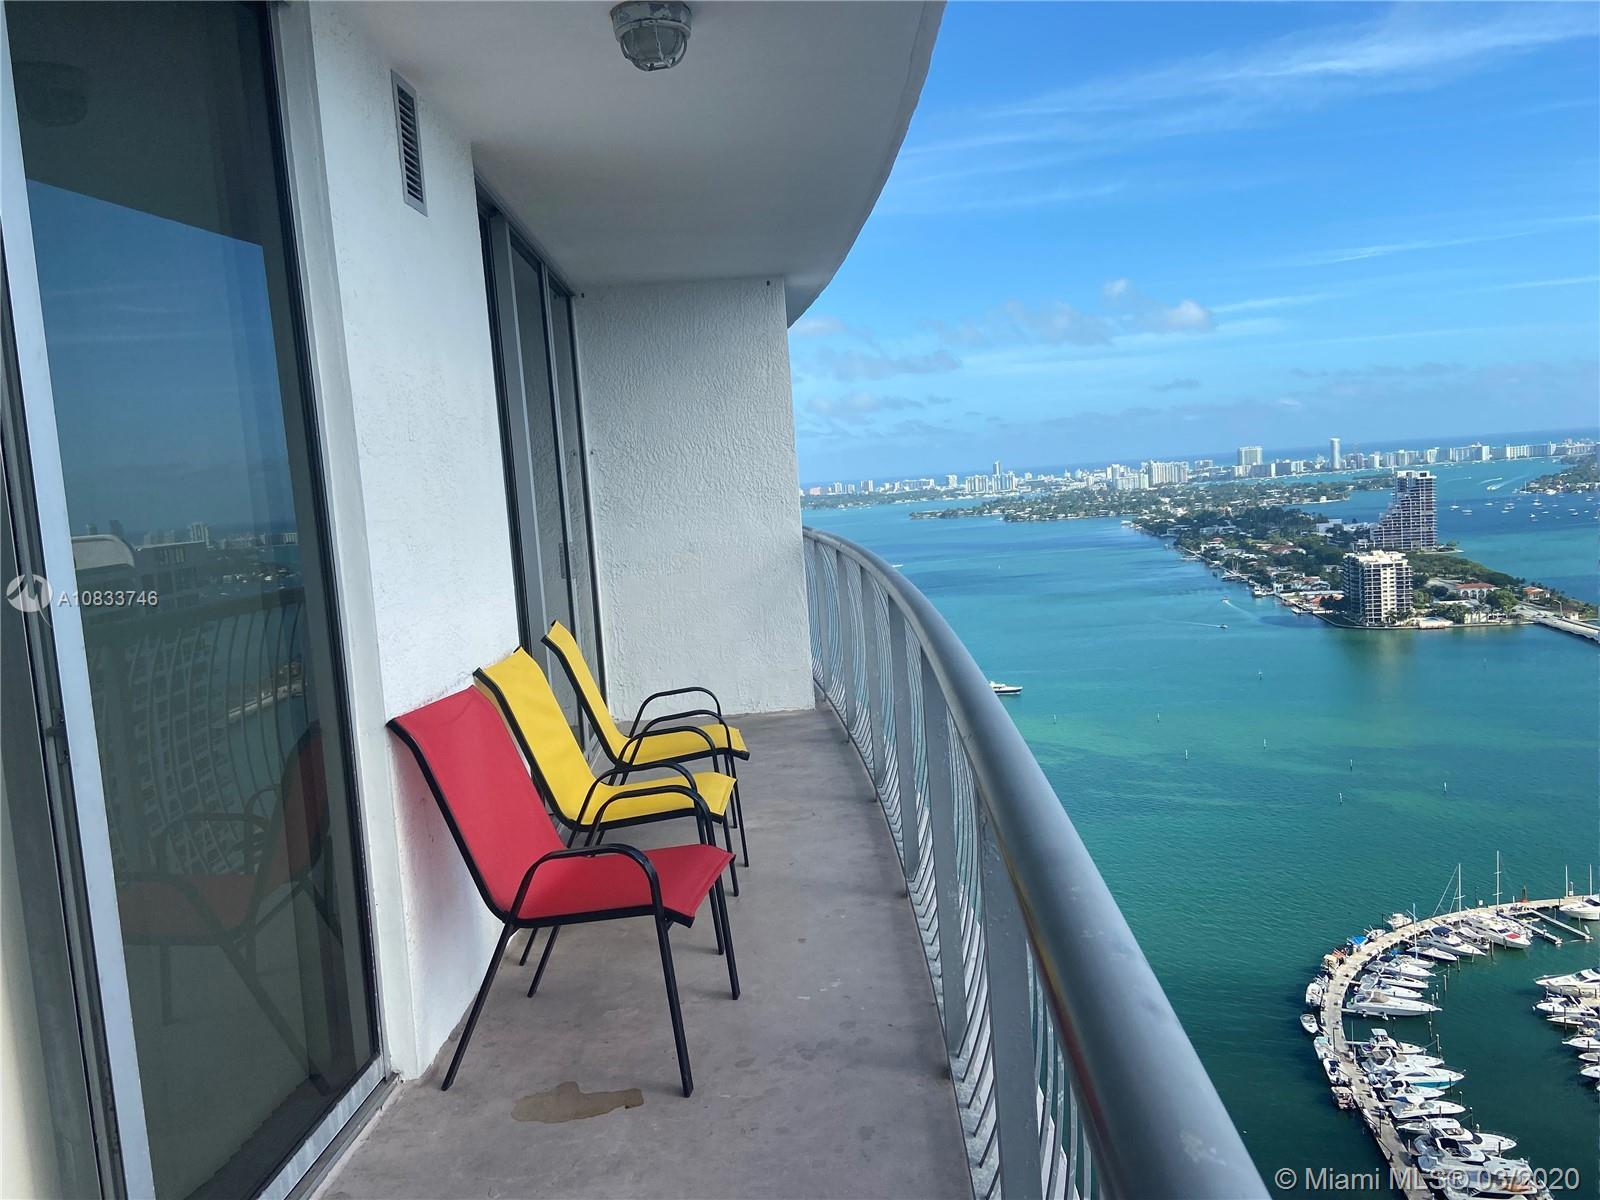 Amazing views from this spacious 1 bed/1 bath at Opera Tower. carpet in the bedroom. Stainless steel